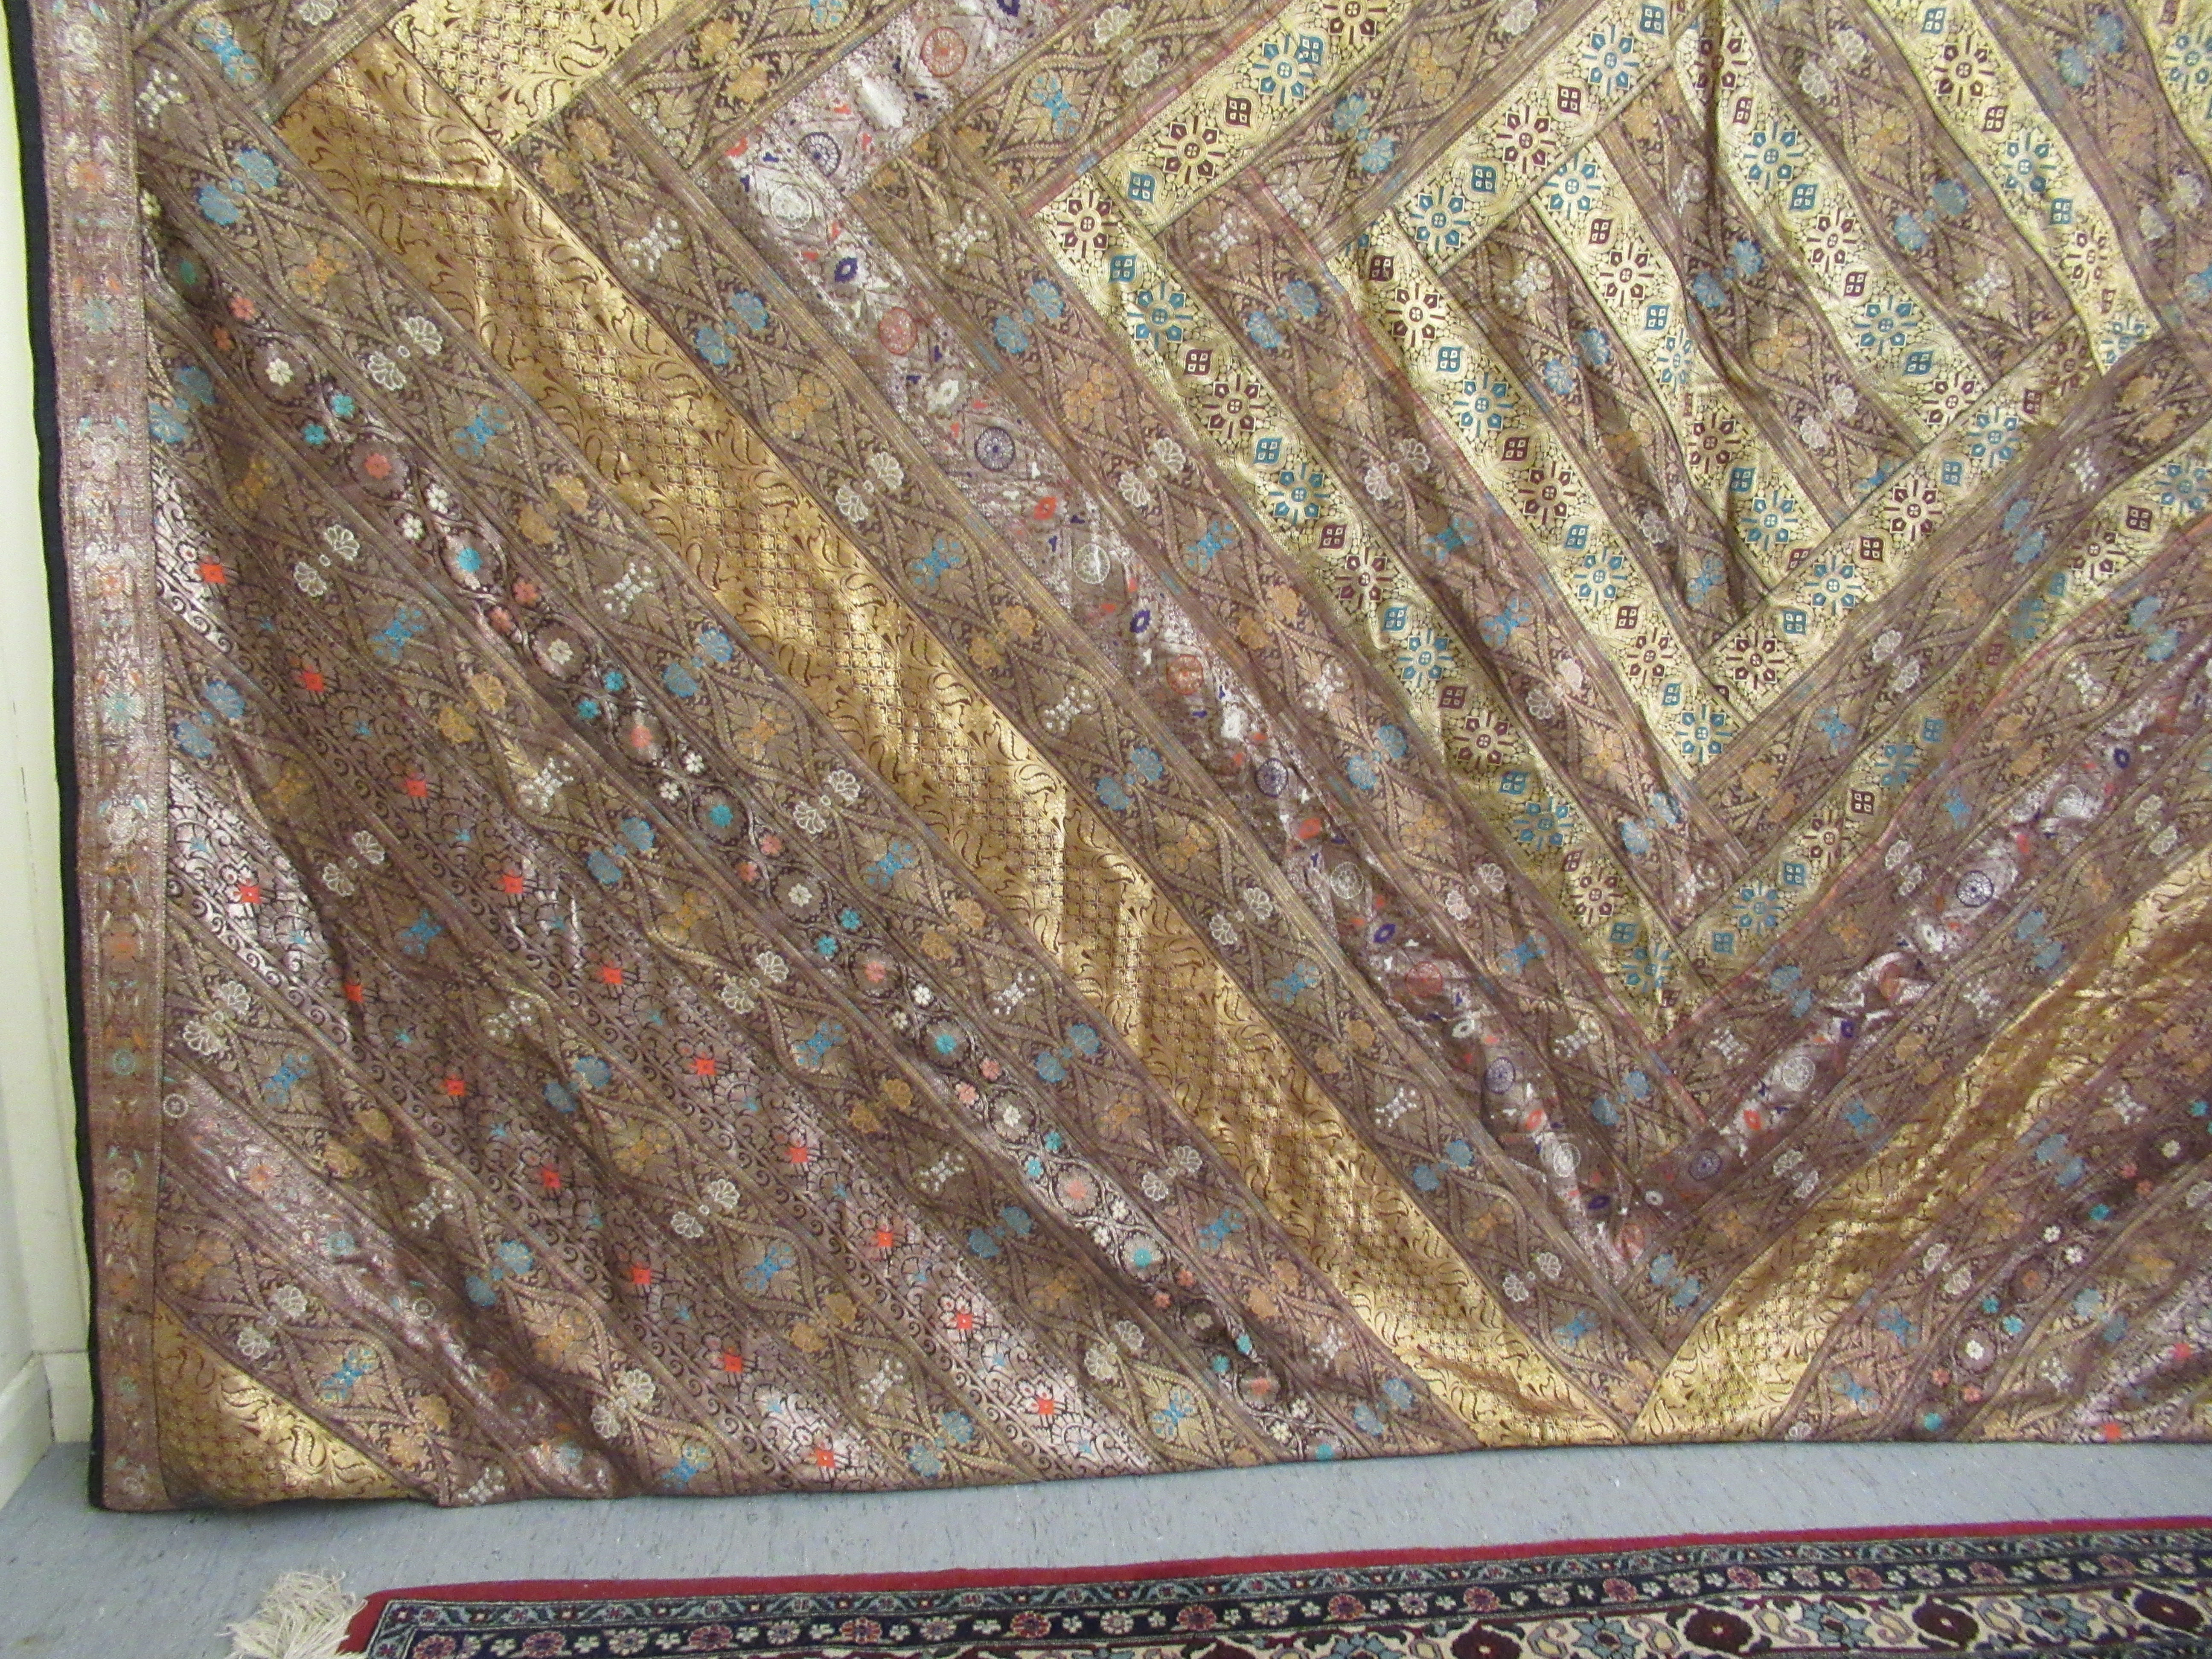 An Indian part silk bed throw, profusely decorated with repeating floral designs with a black fabric - Image 5 of 7